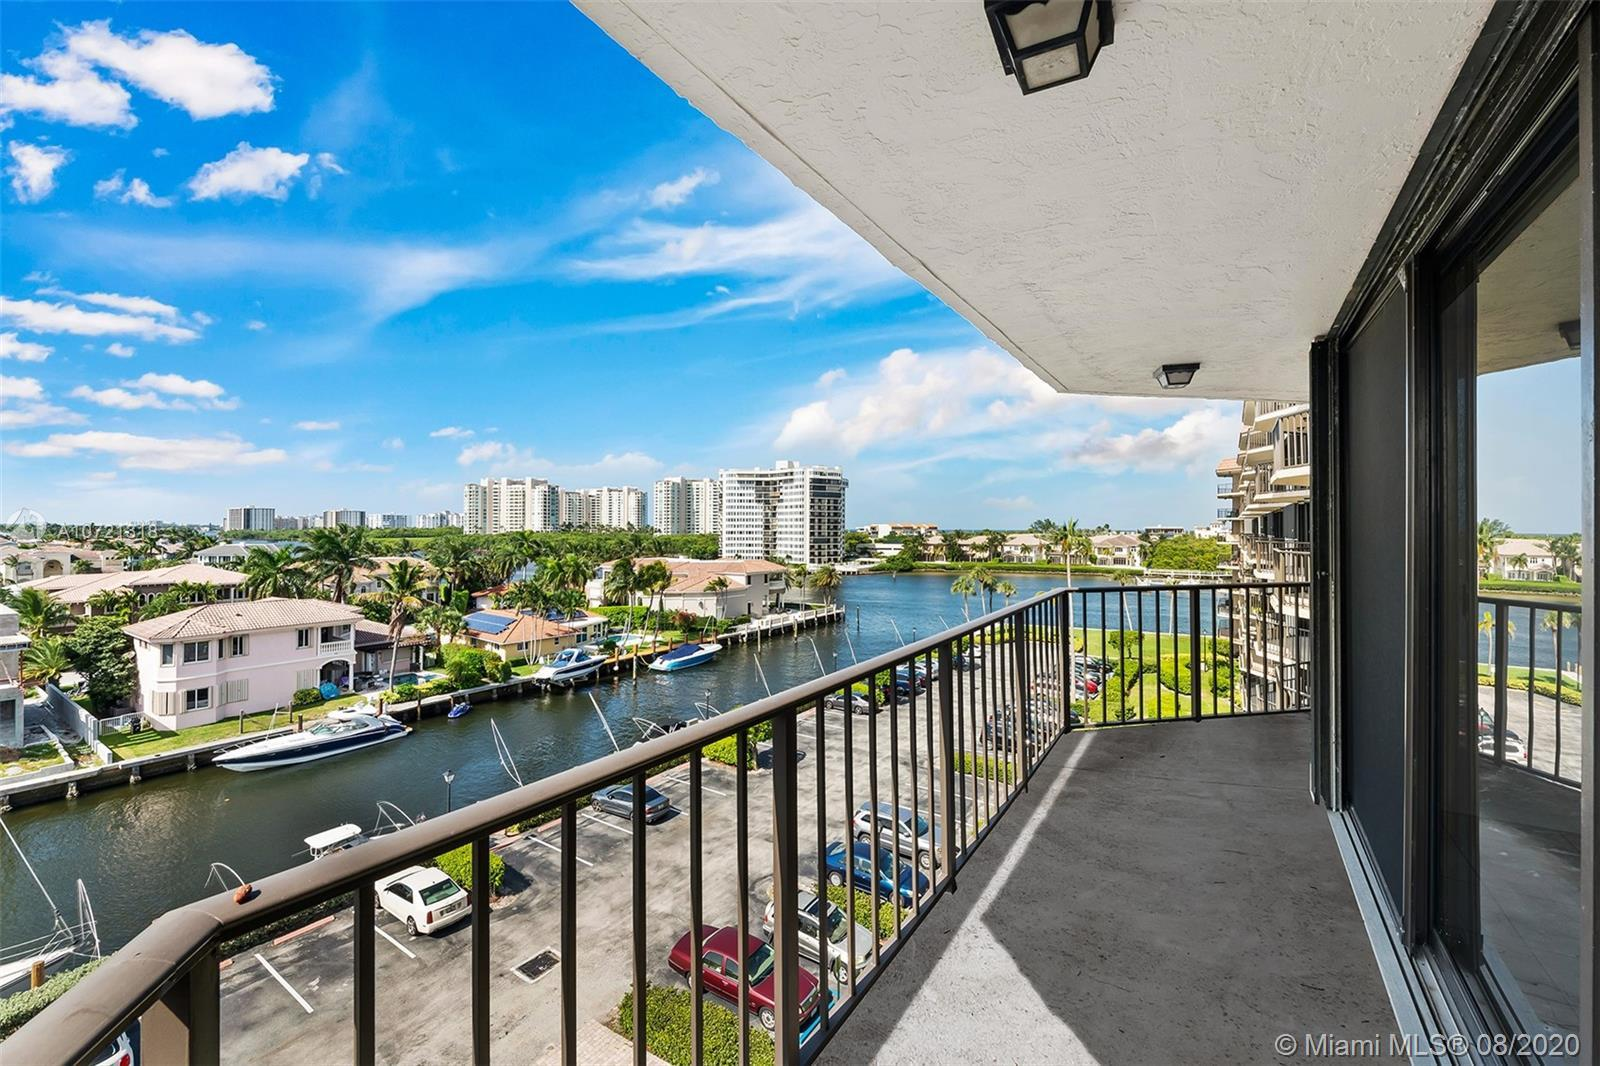 Views from every room in this -2 bedroom, 2 bath condo located in the highly desirable Porta Bella E